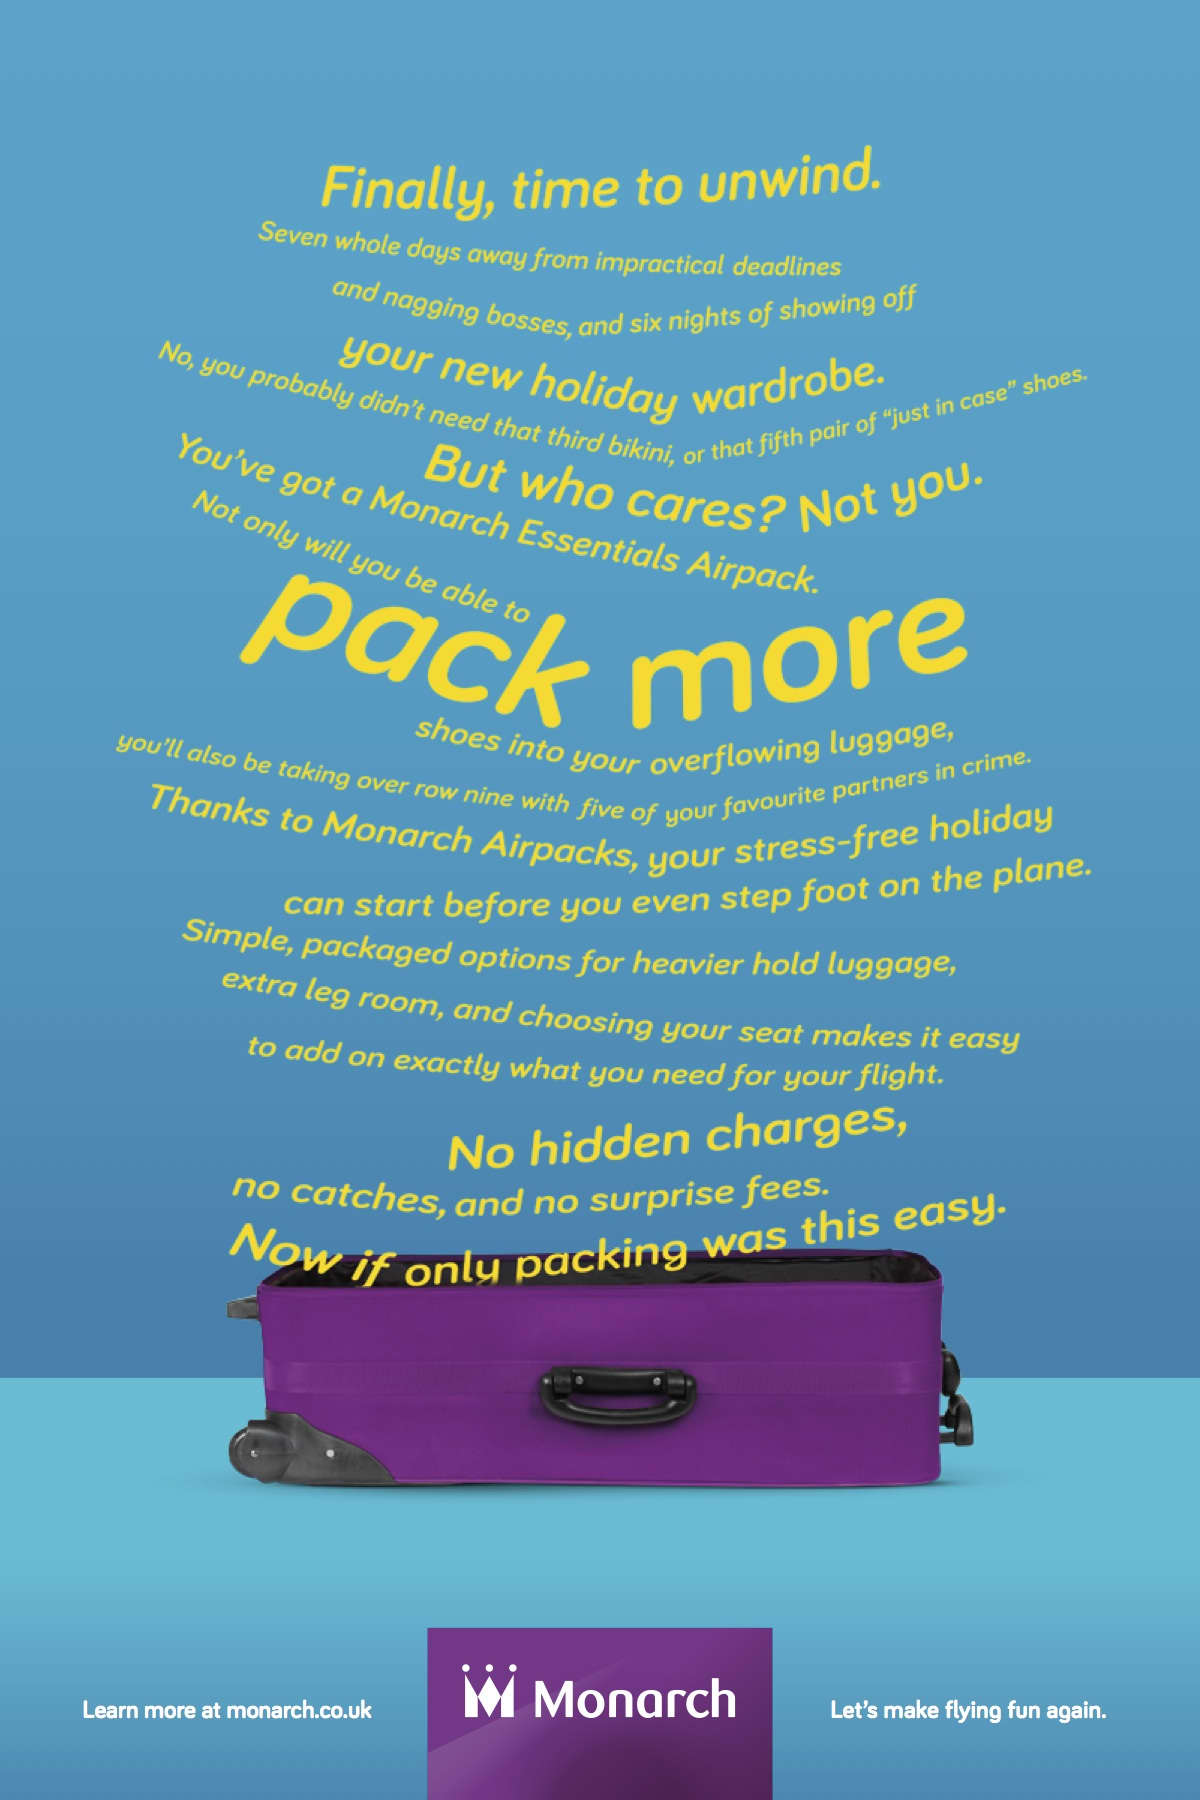 Monarch Airlines Airpacks